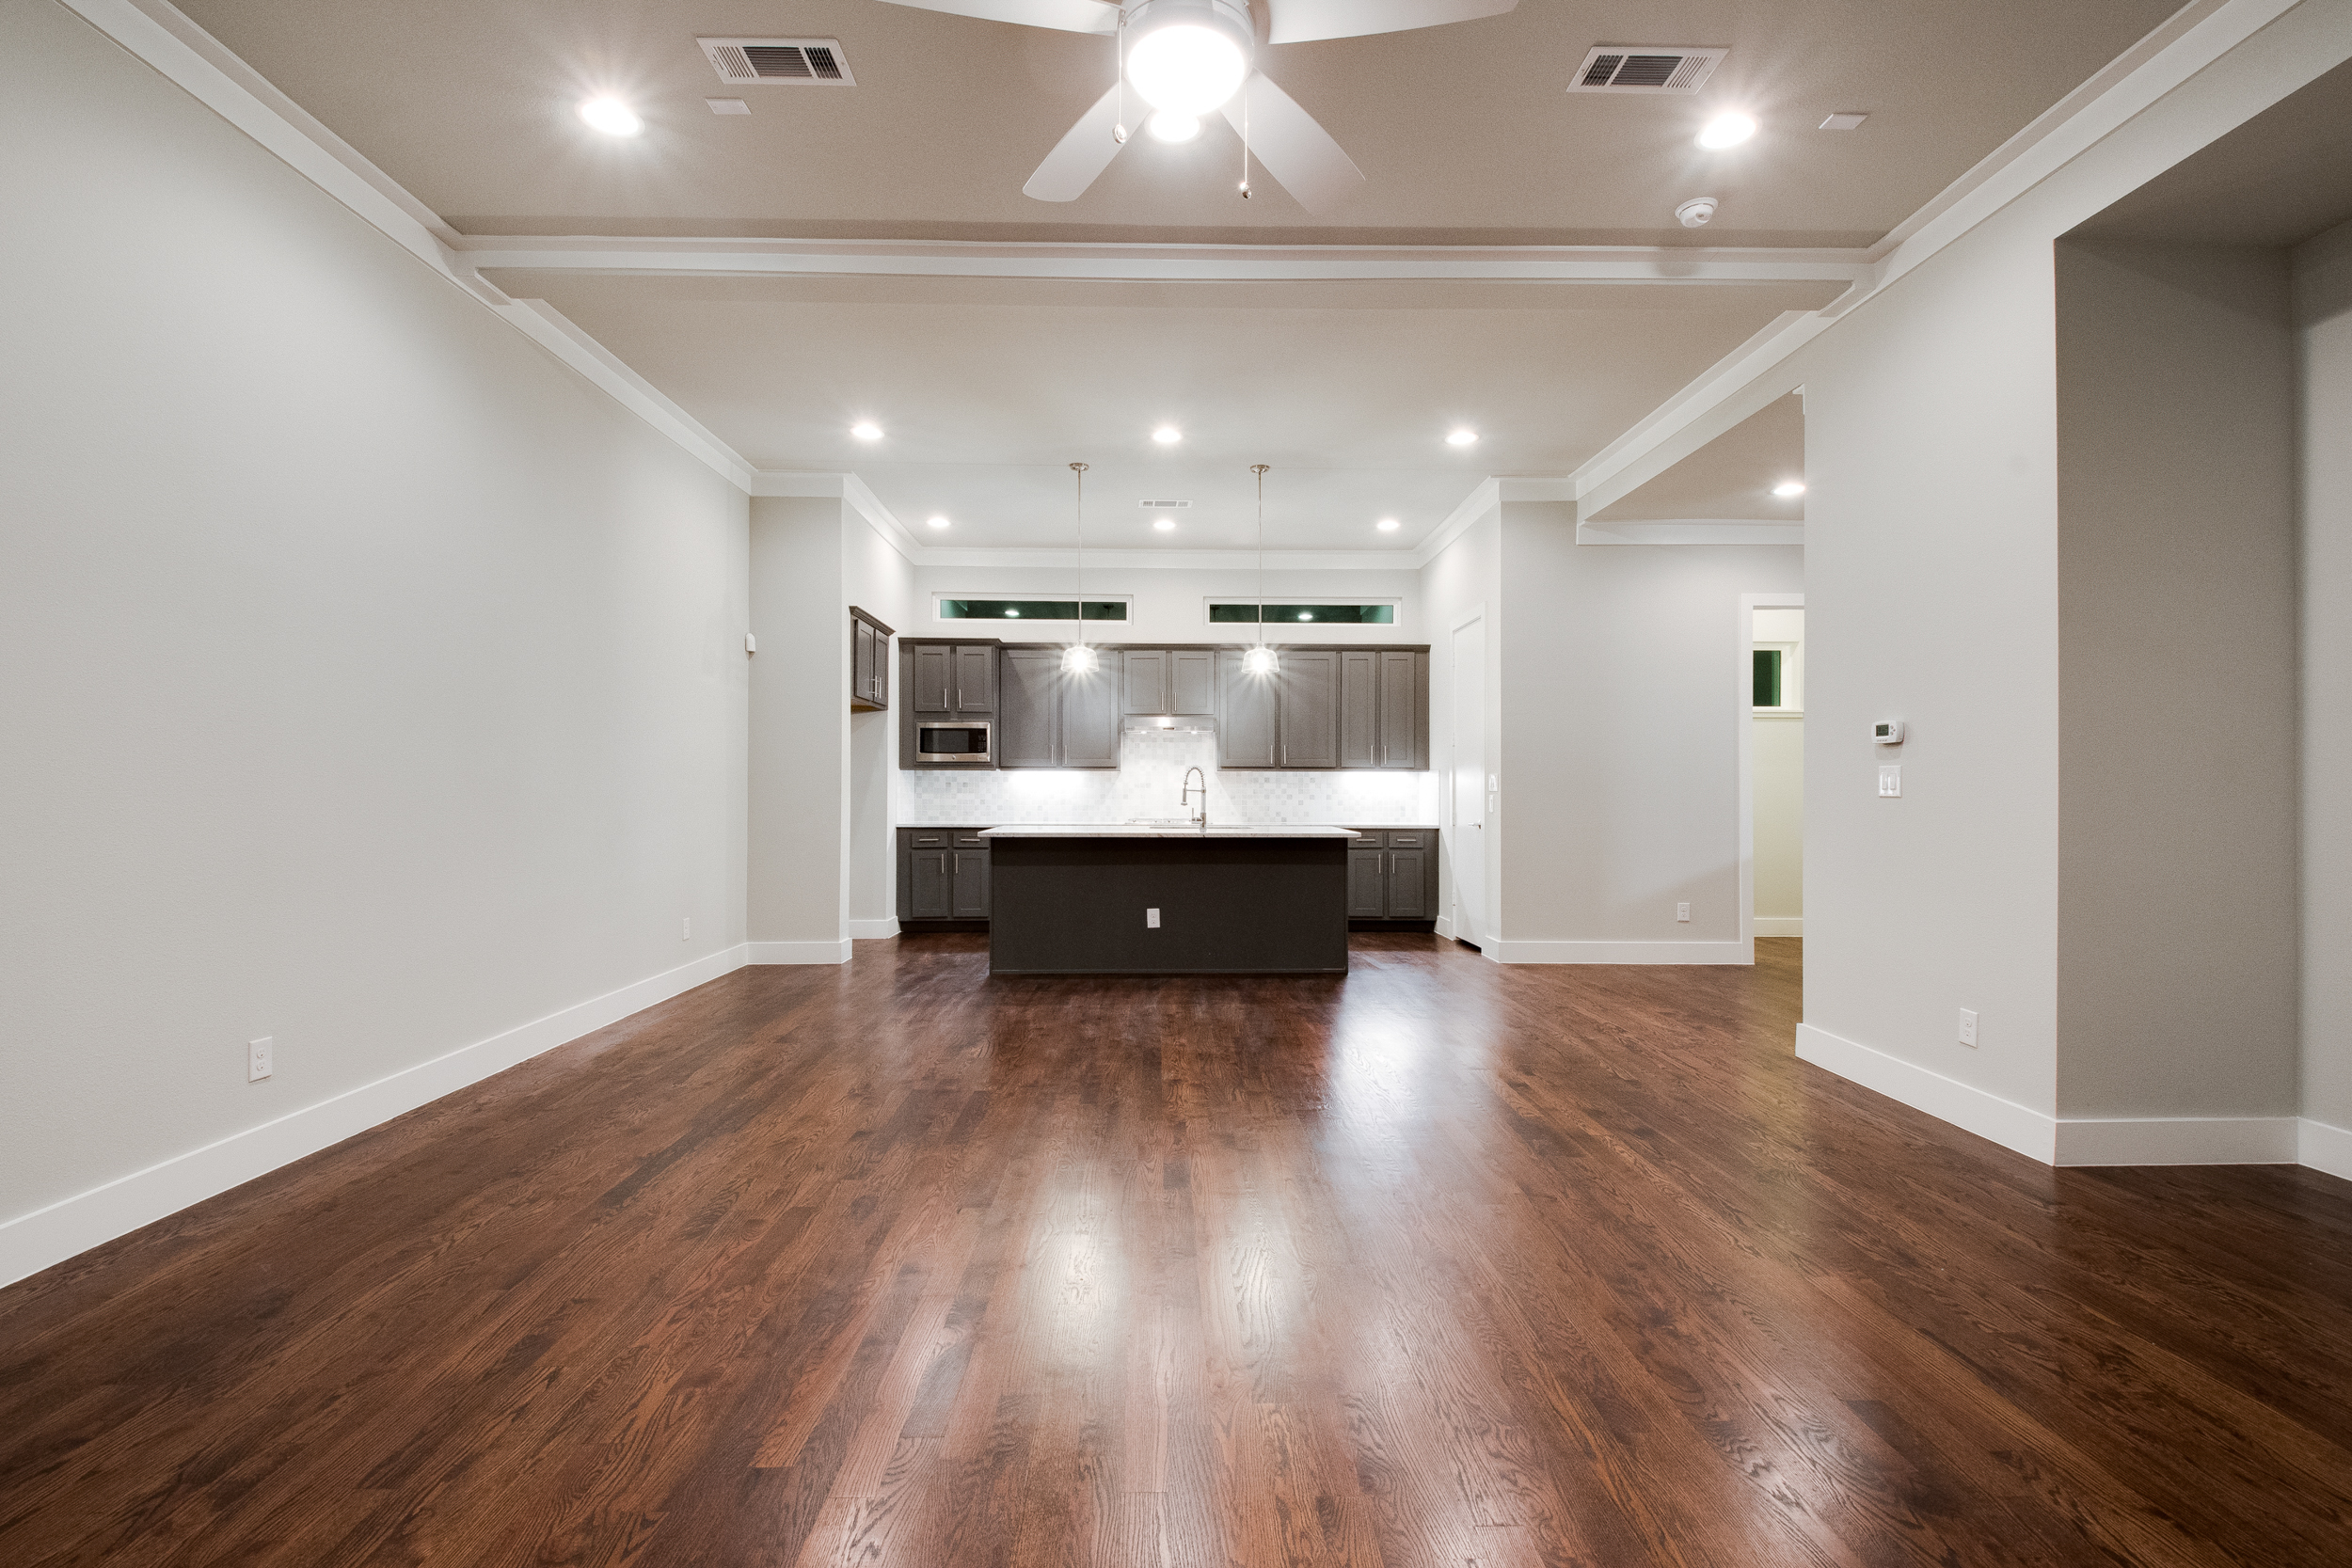 Interior view of the empty living room with dark wood floors, white crown molding and a view into the kitchen